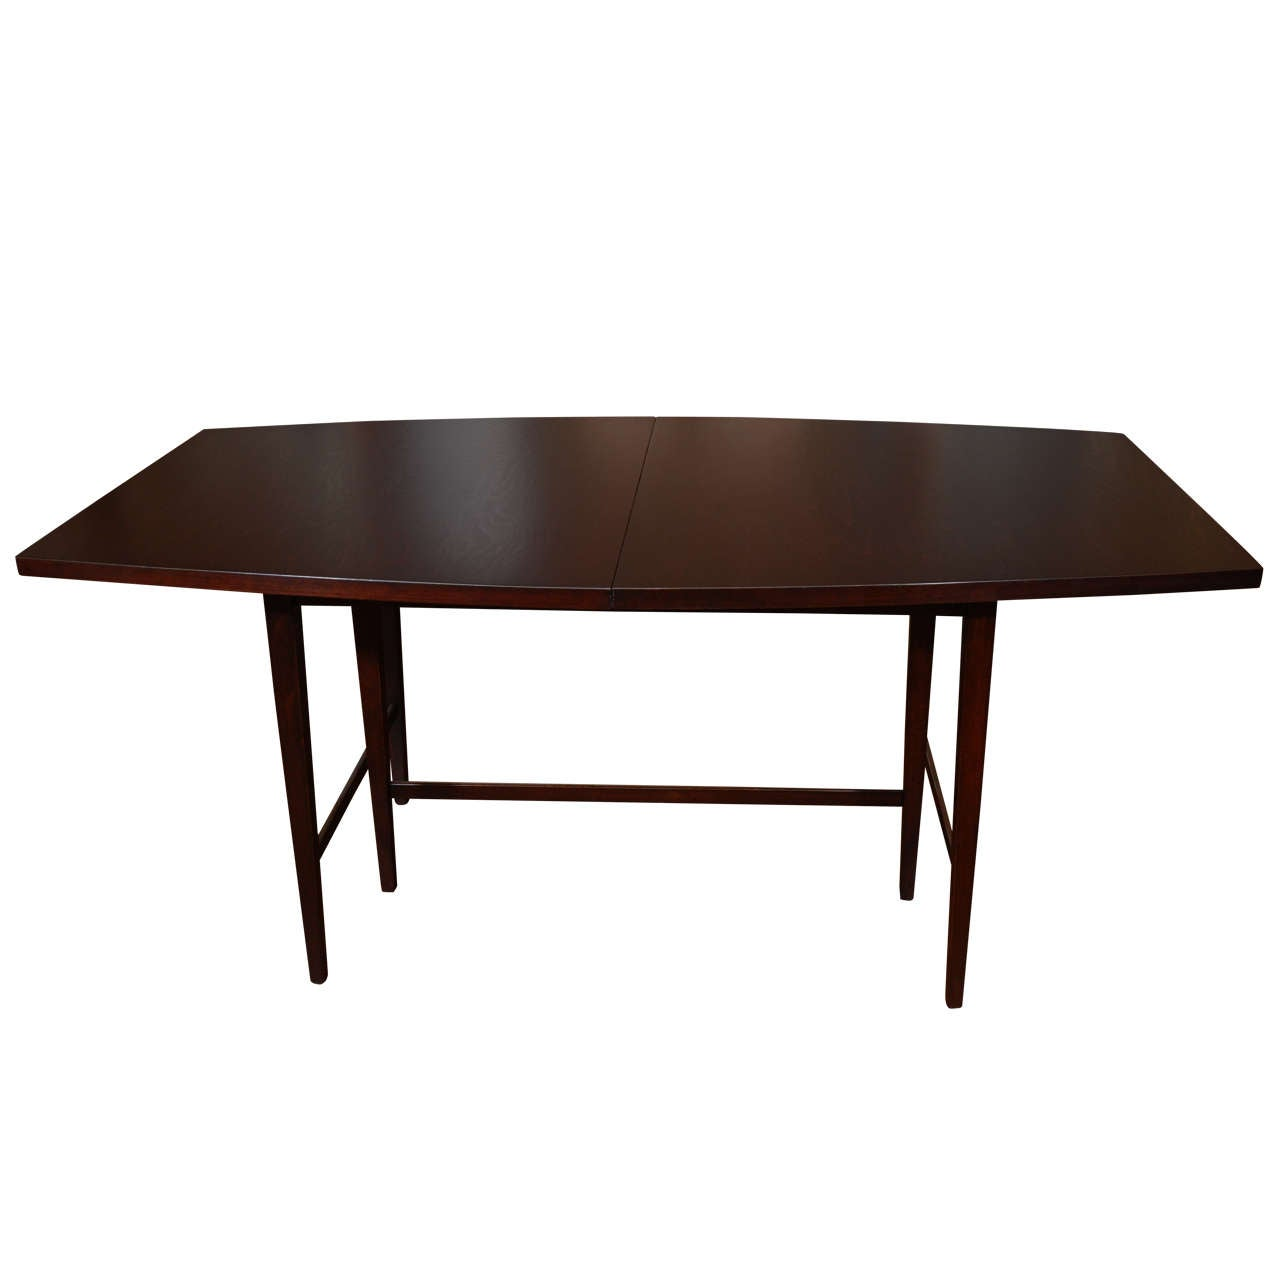 Ebonized paul mccobb dining table with leaf at 1stdibs for World best dining tables